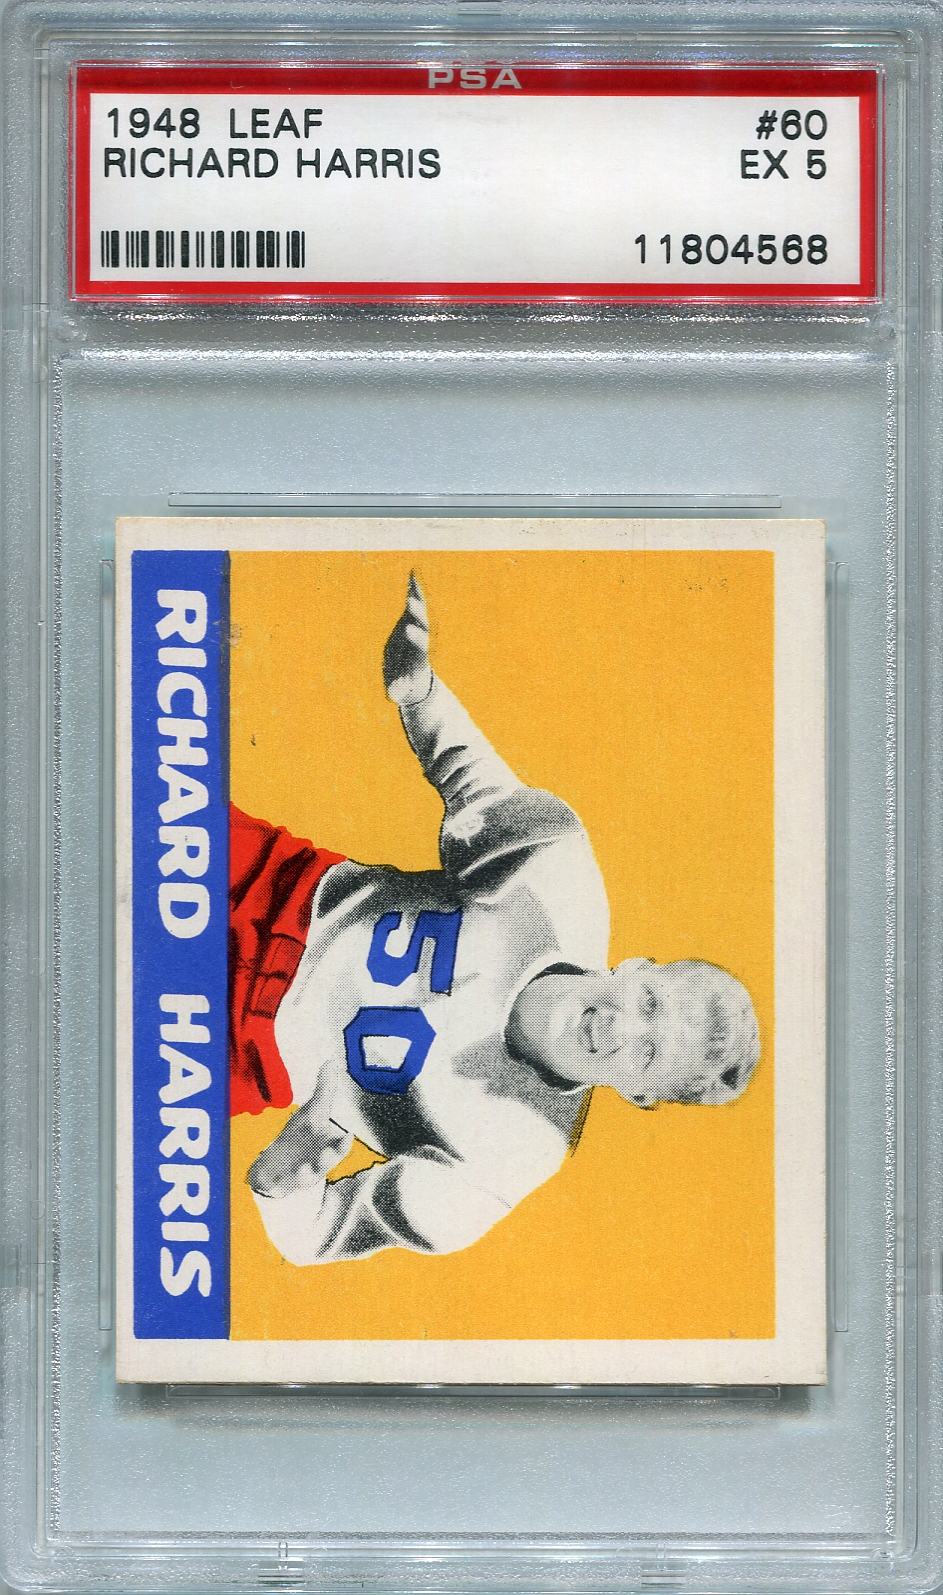 1948 Leaf Football Richard Harris #60 PSA 5 EX